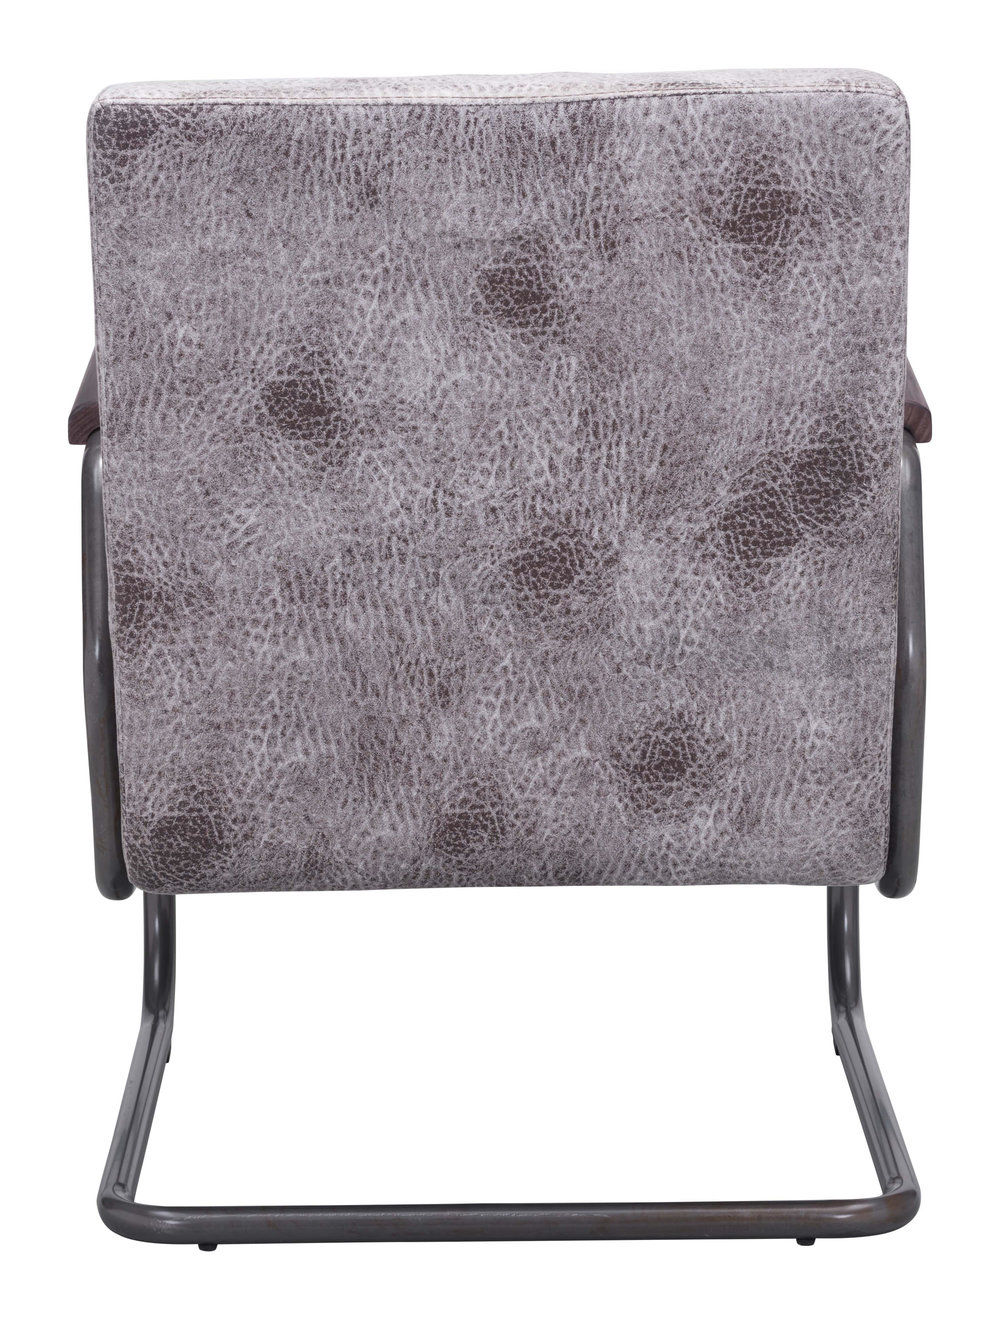 ZUO MODERN CONTEMPORARY, INC - Father Lounge Chair Vintage White